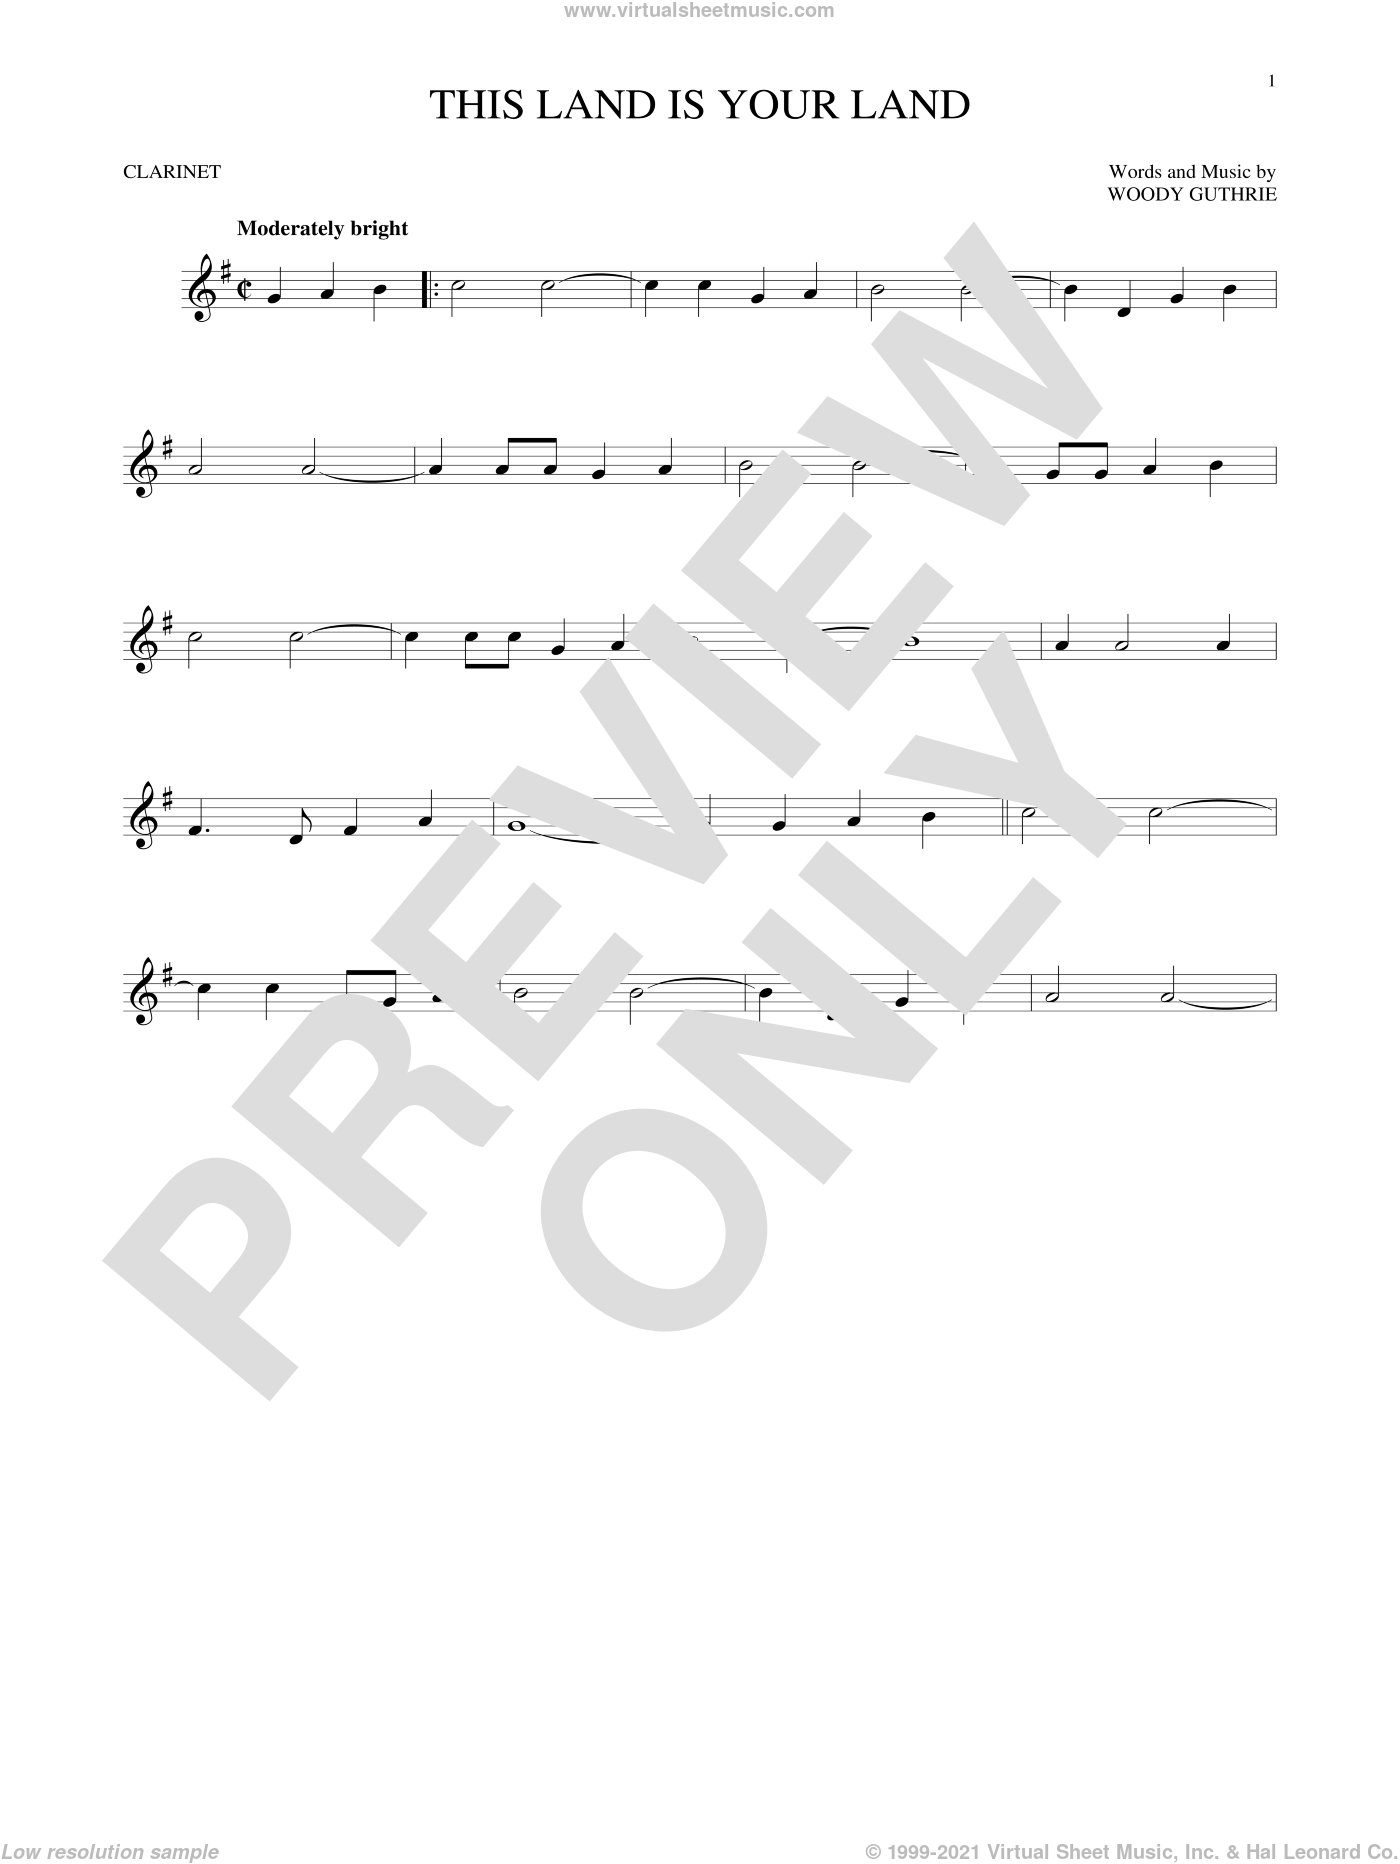 This Land Is Your Land sheet music for clarinet solo by Woody Guthrie, intermediate skill level